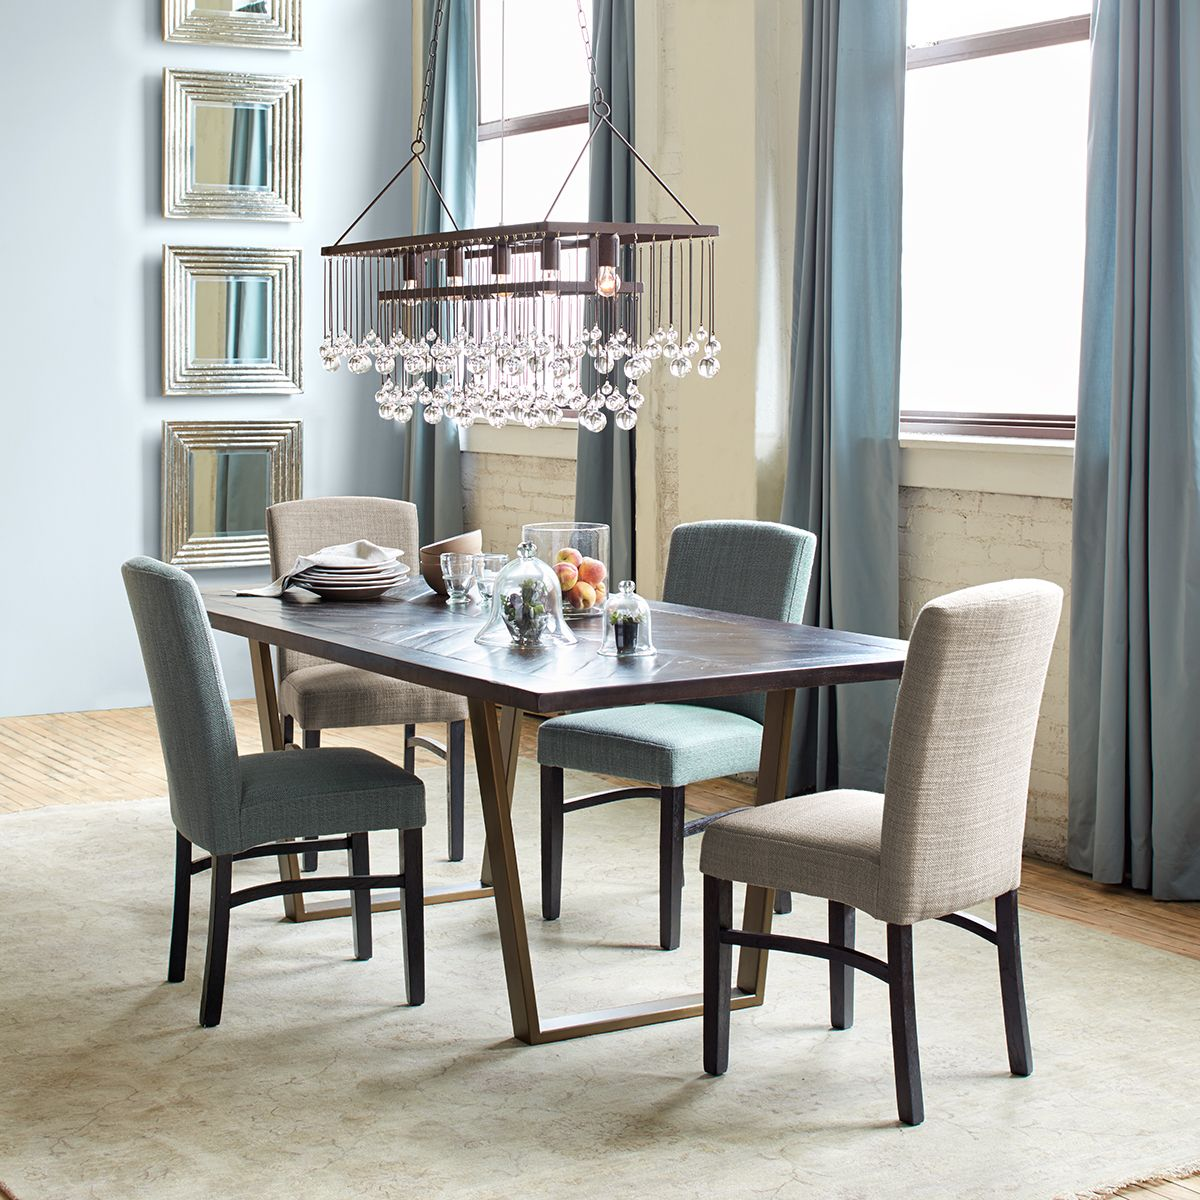 arhaus capri dining chairs fabrics for with versatile styling that blends perfectly both